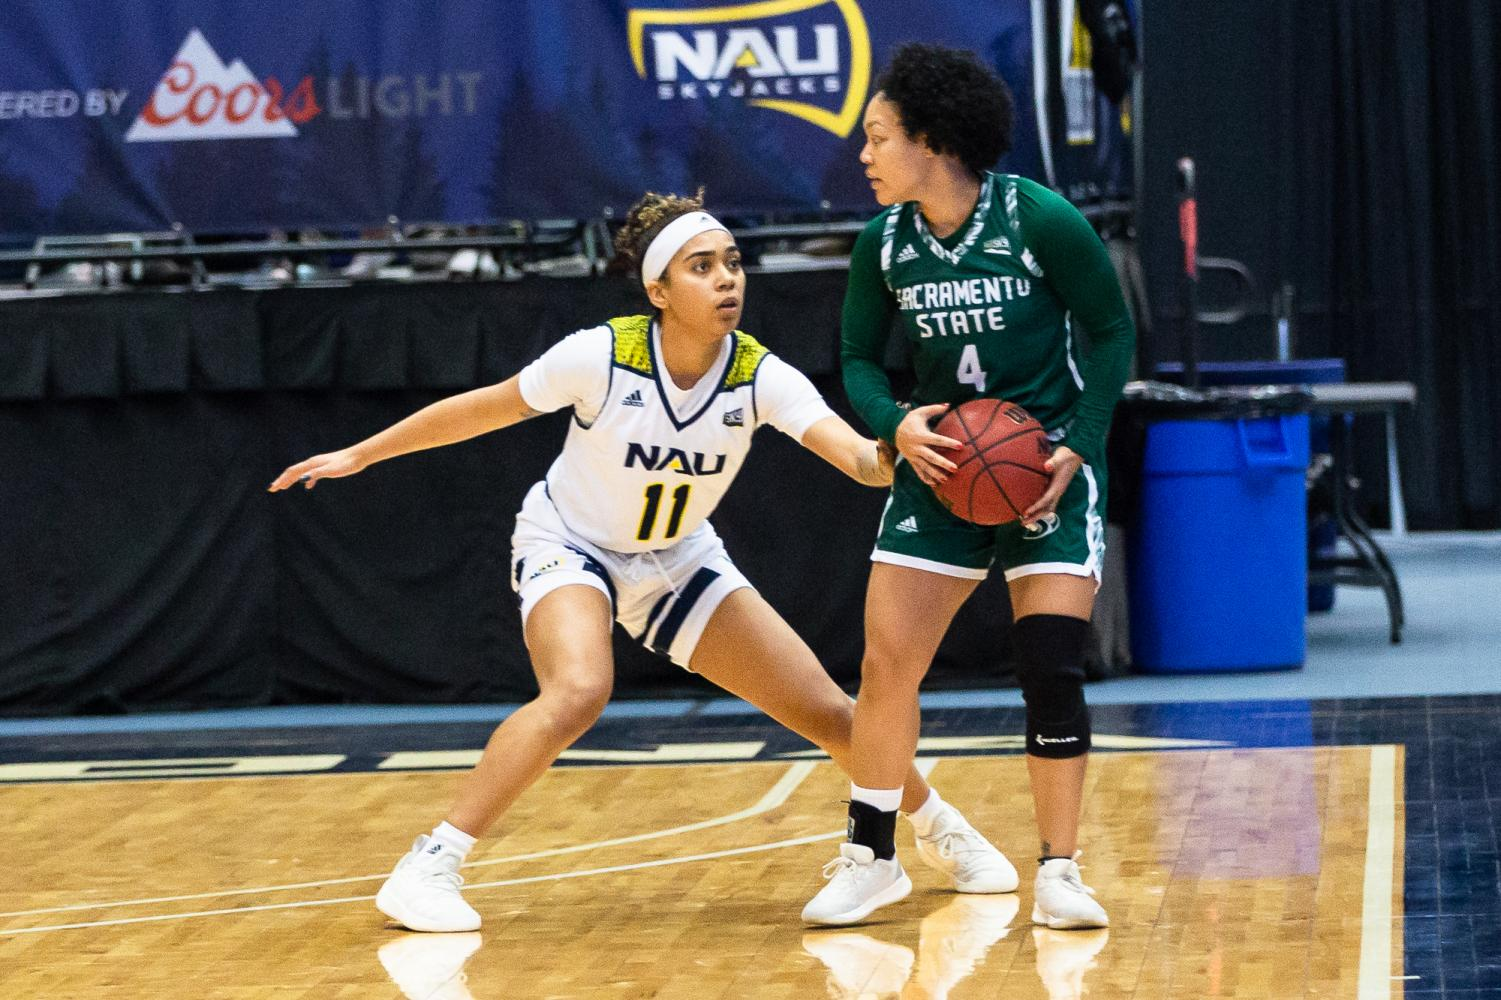 Sac State senior guard Camariah King pivots against Northern Arizona junior guard Jacey Bailey versus the Lumberjacks on Thursday, Jan. 9 at the Joseph C. Rolle Activity Center. The Hornets lost in double-overtime on the road 114-107 at Northern Arizona on Thursday night.